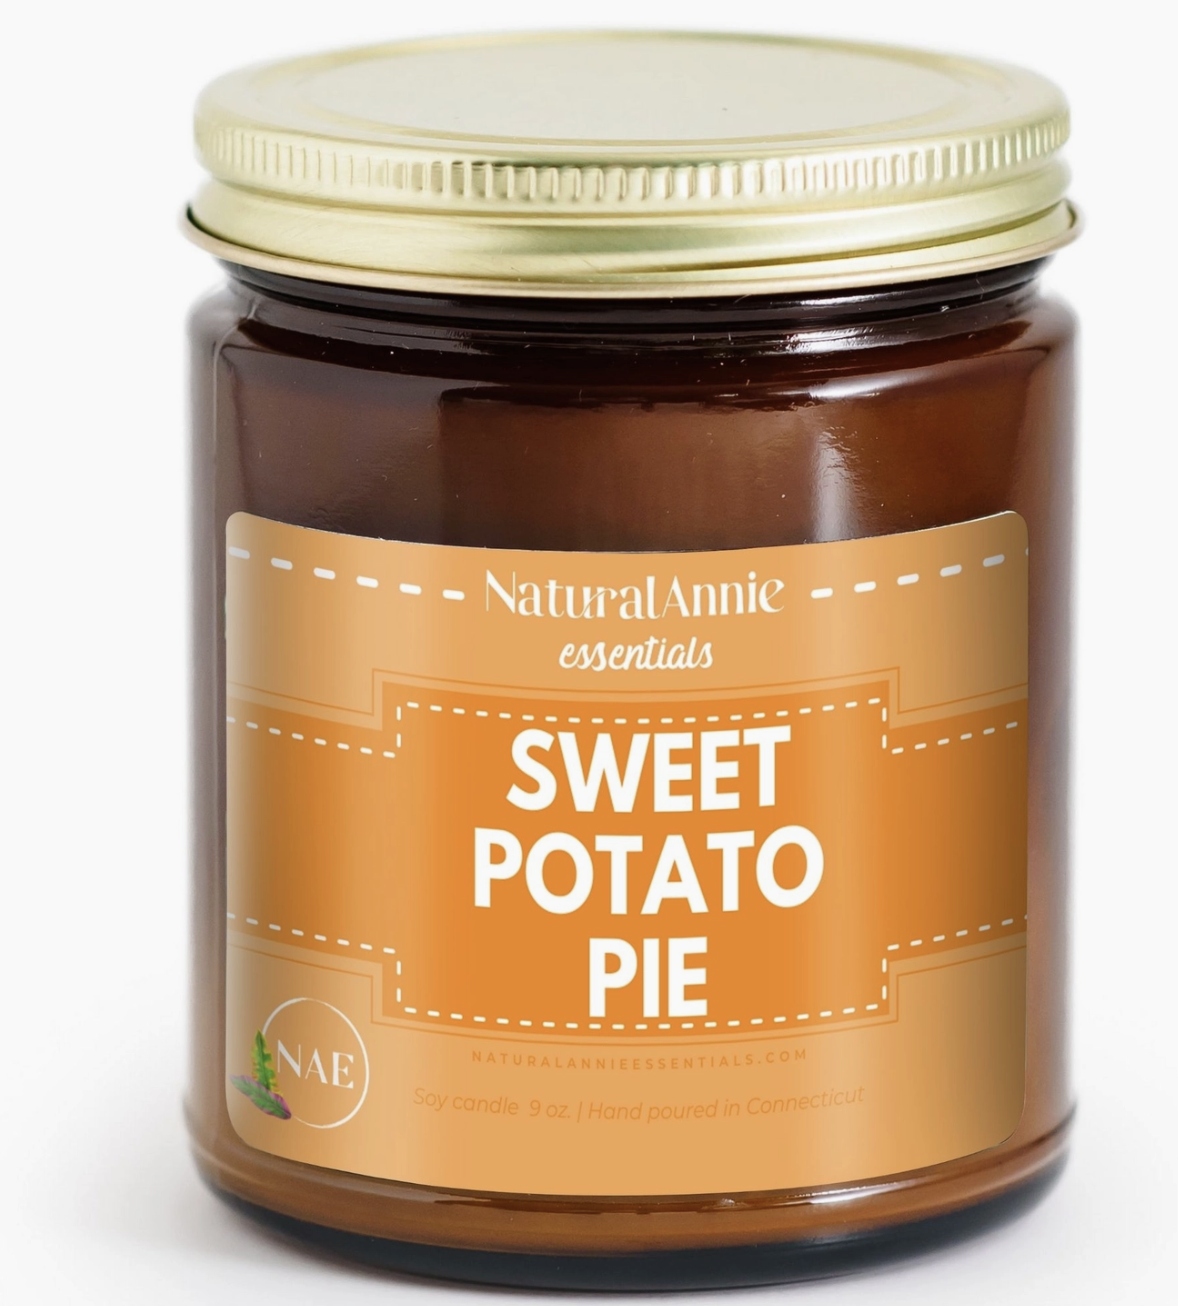 NaturalAnnie Essentials SWEET POTATO PIE Scented Soy Candle 9oz